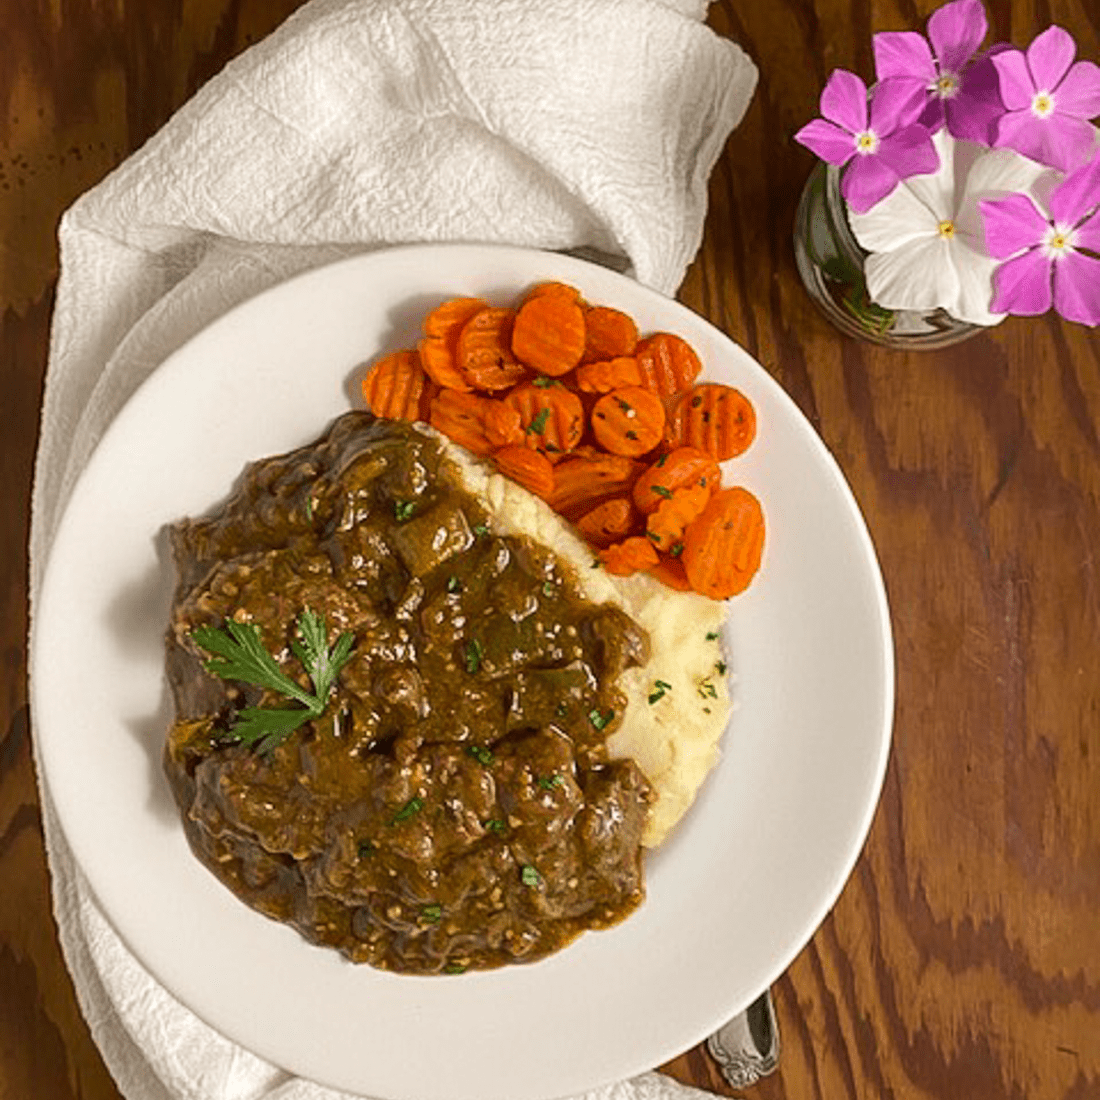 A round white plate filled with gluten free Cajun smothered steak and gravy, mashed potatoes and baked carrots.